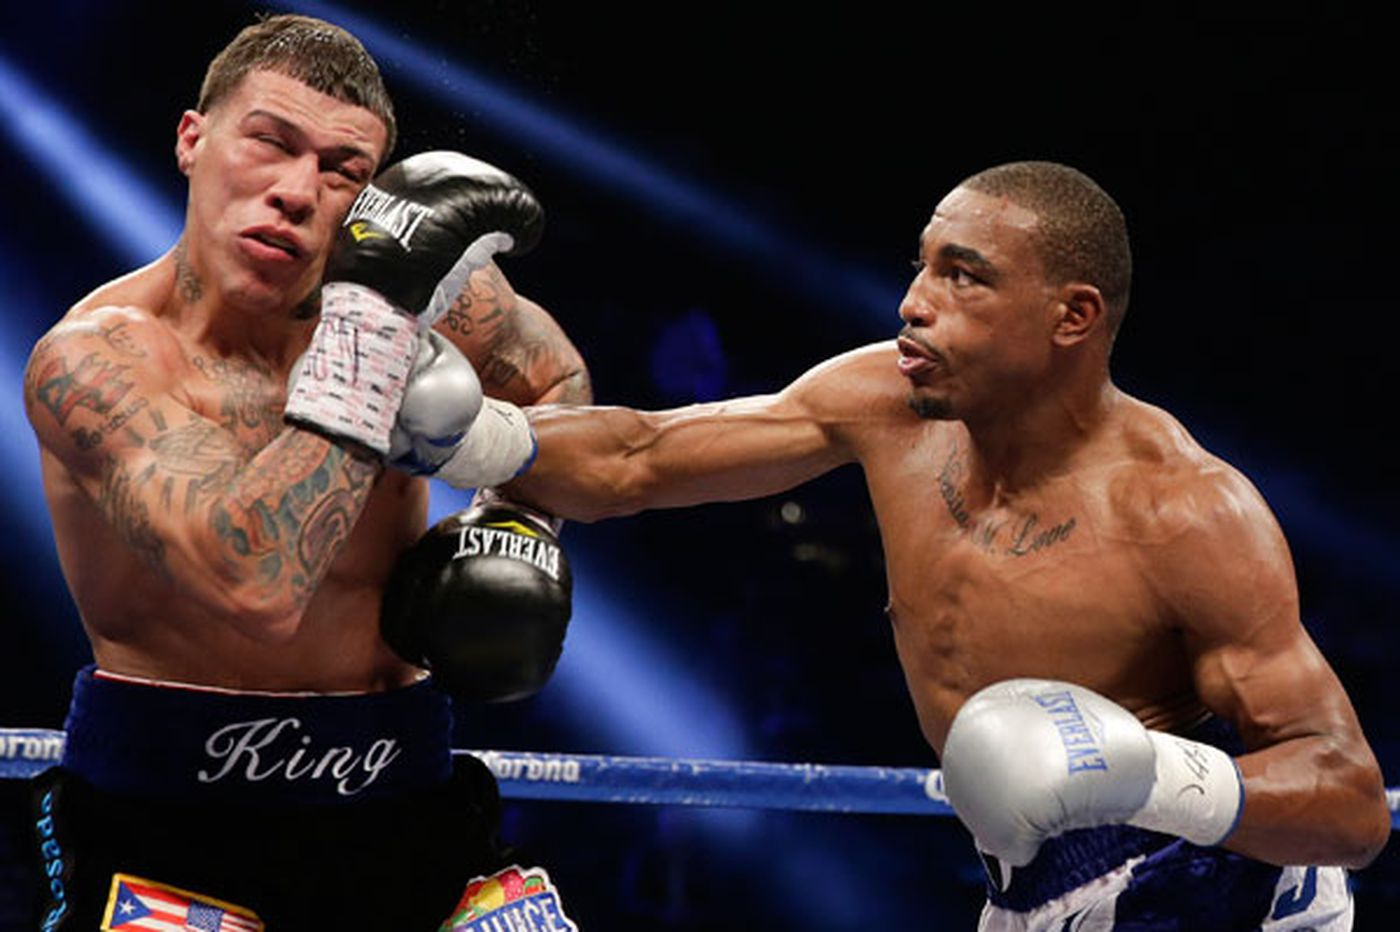 North Philly fighter Gabriel Rosado loses on split decision